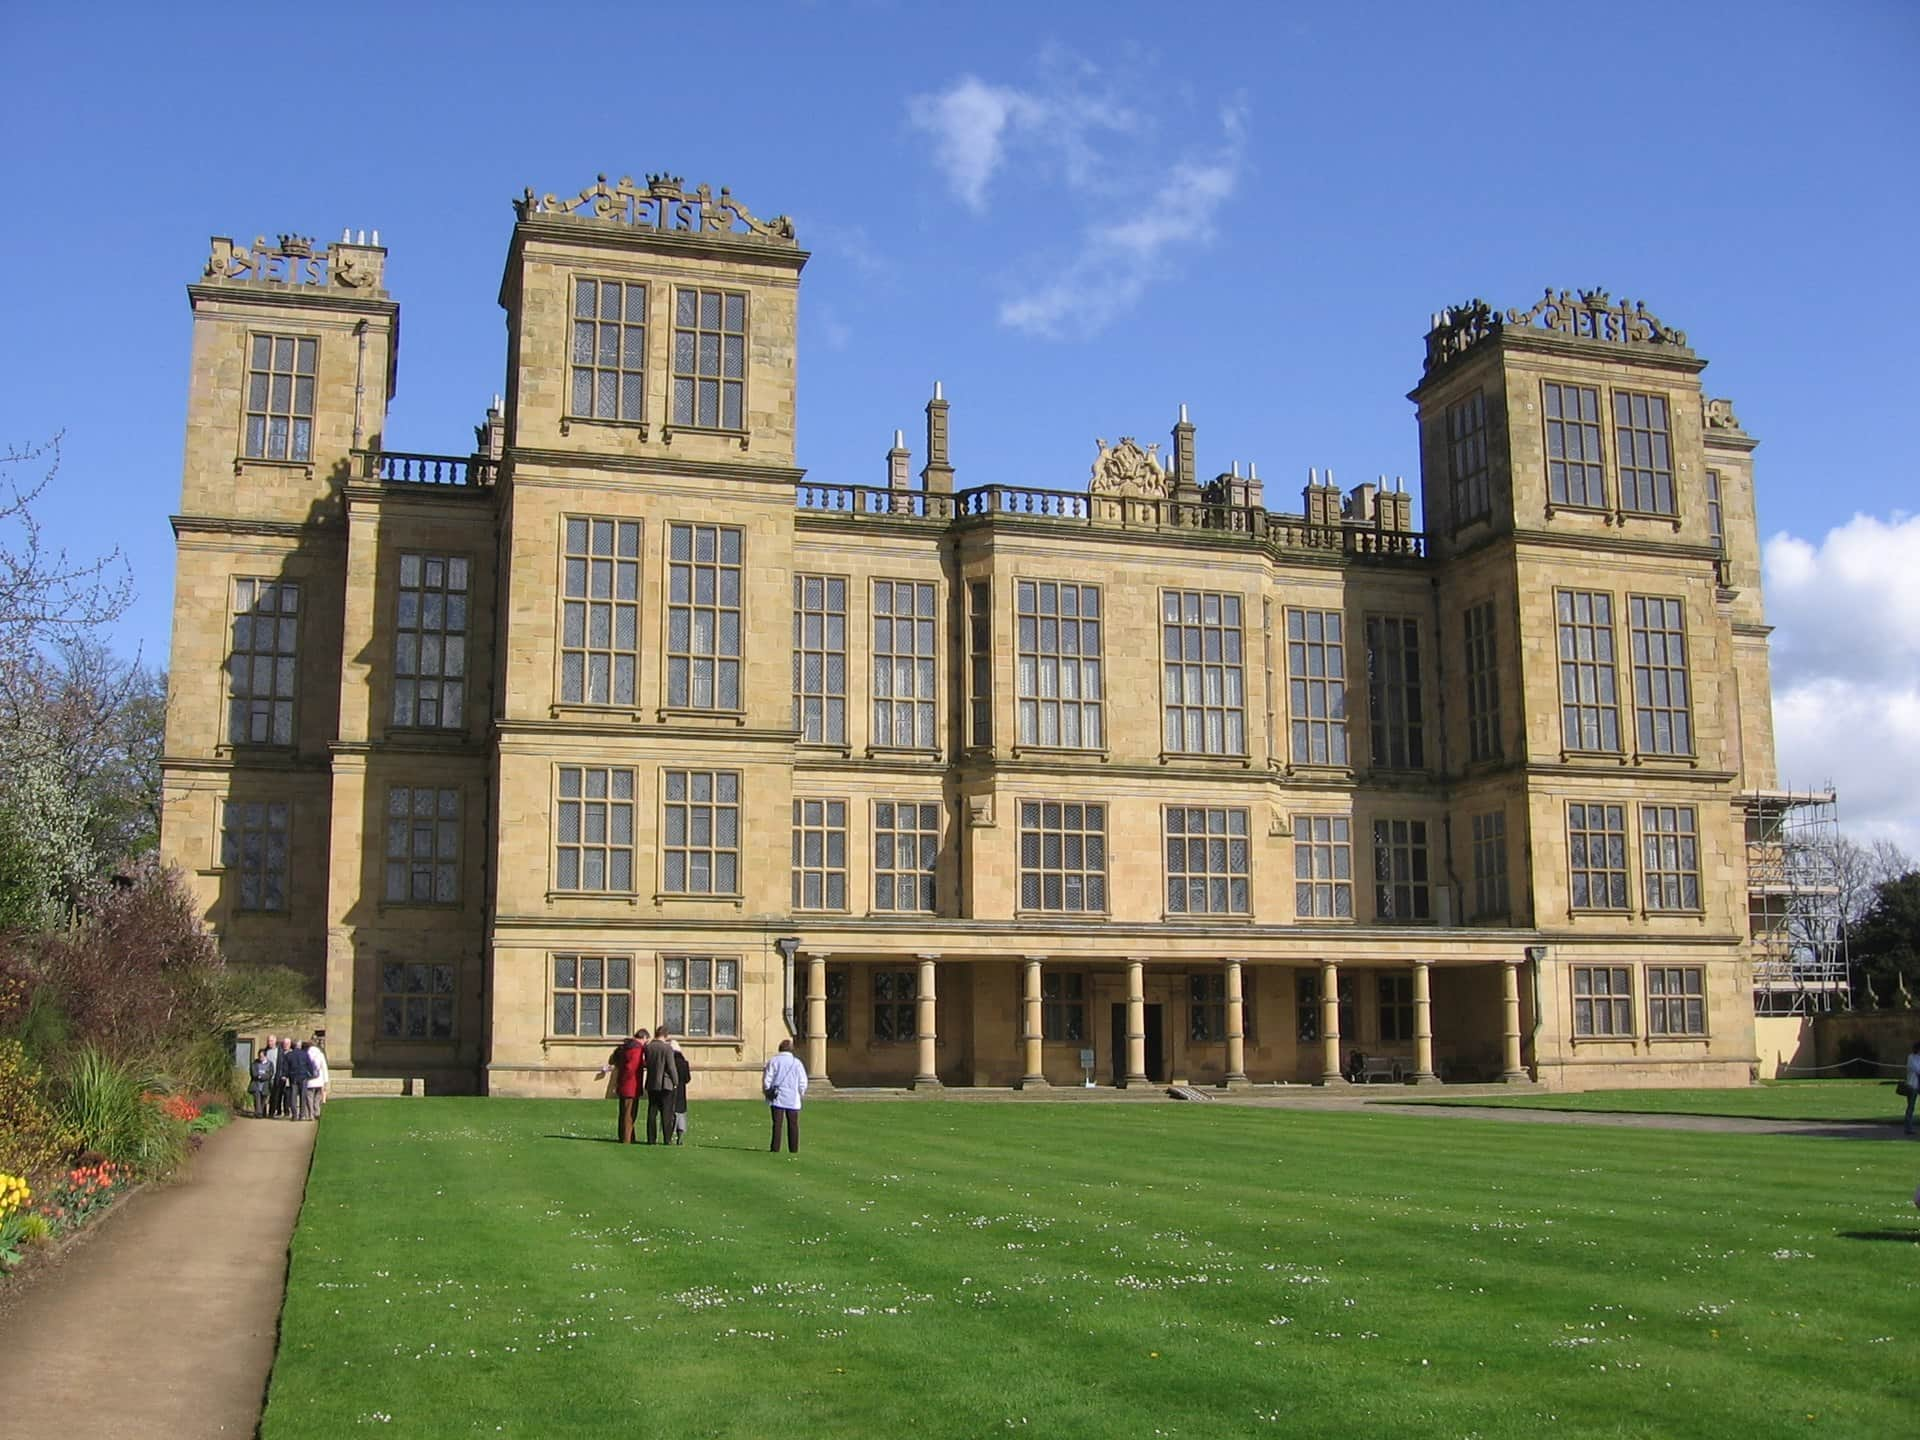 The exterior of Hardwick Hall on a sunny day.